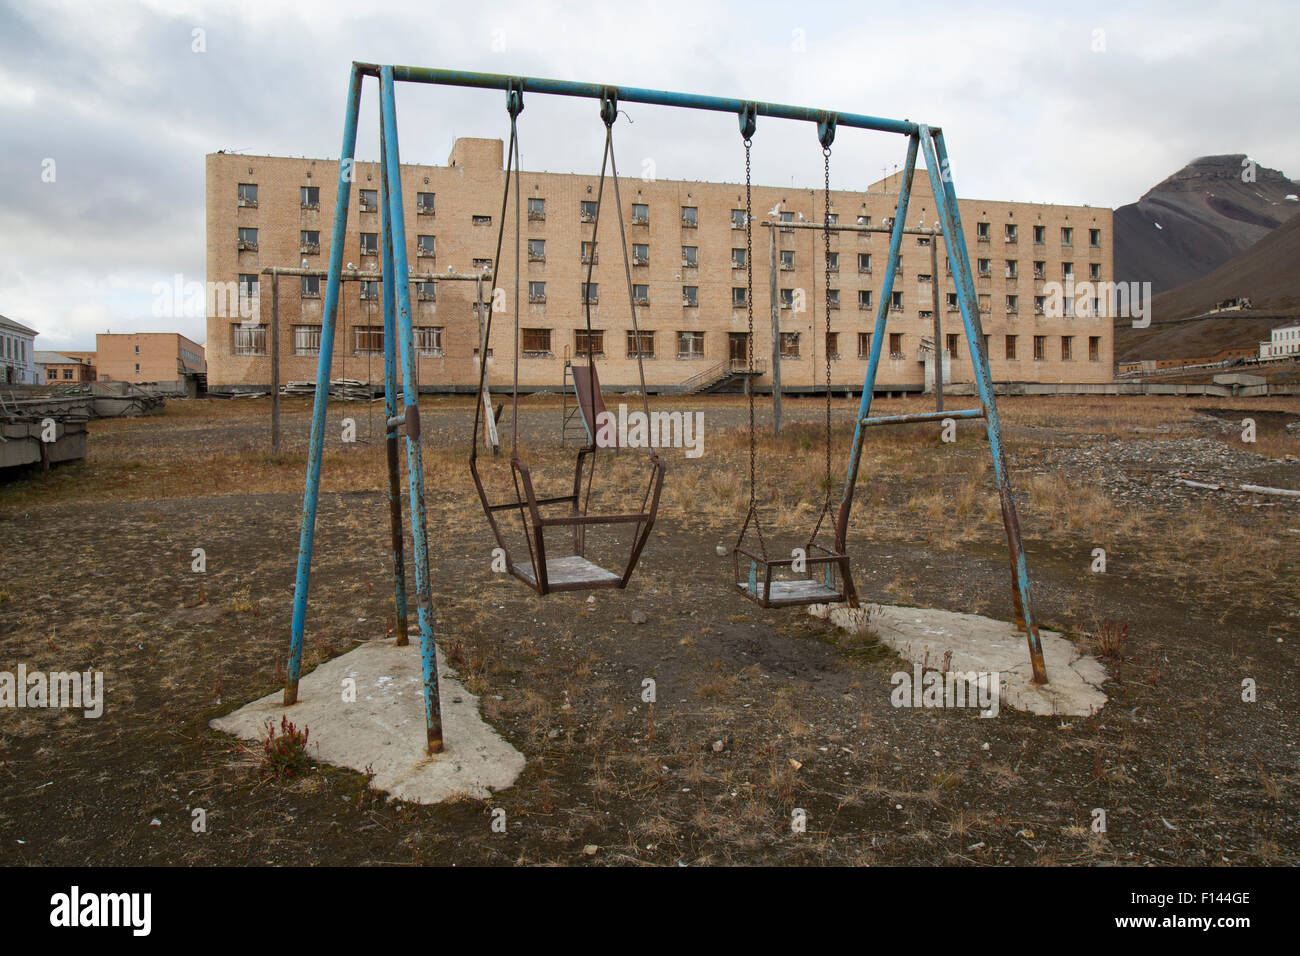 A Child S Playground And Apartment Block In The Abandoned Mining Town Stock Photo Alamy